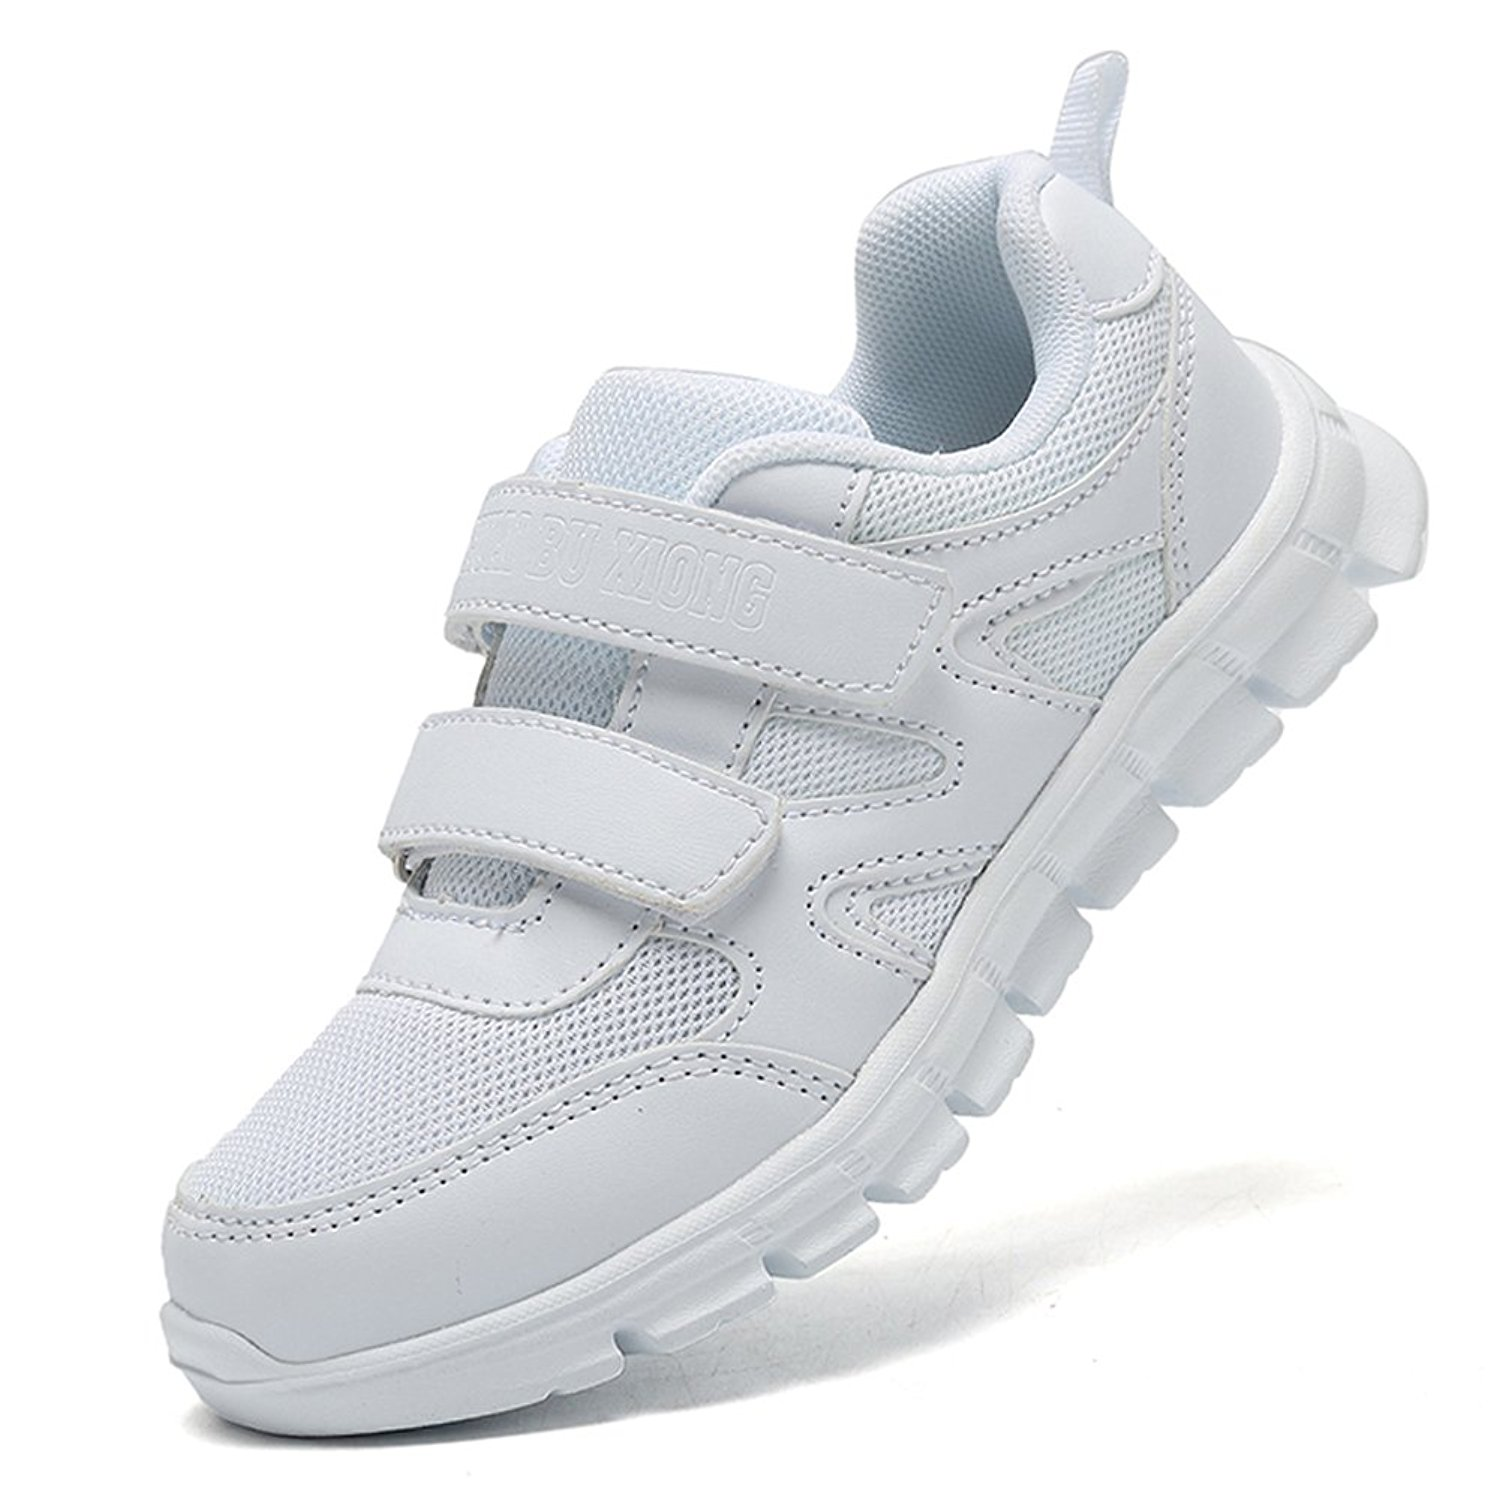 94cc26b4fe5 Get Quotations · LakeRom Girls Shoes for Kids Boys Sneakers School Uniform  White Shoes Casual Sport Shoes